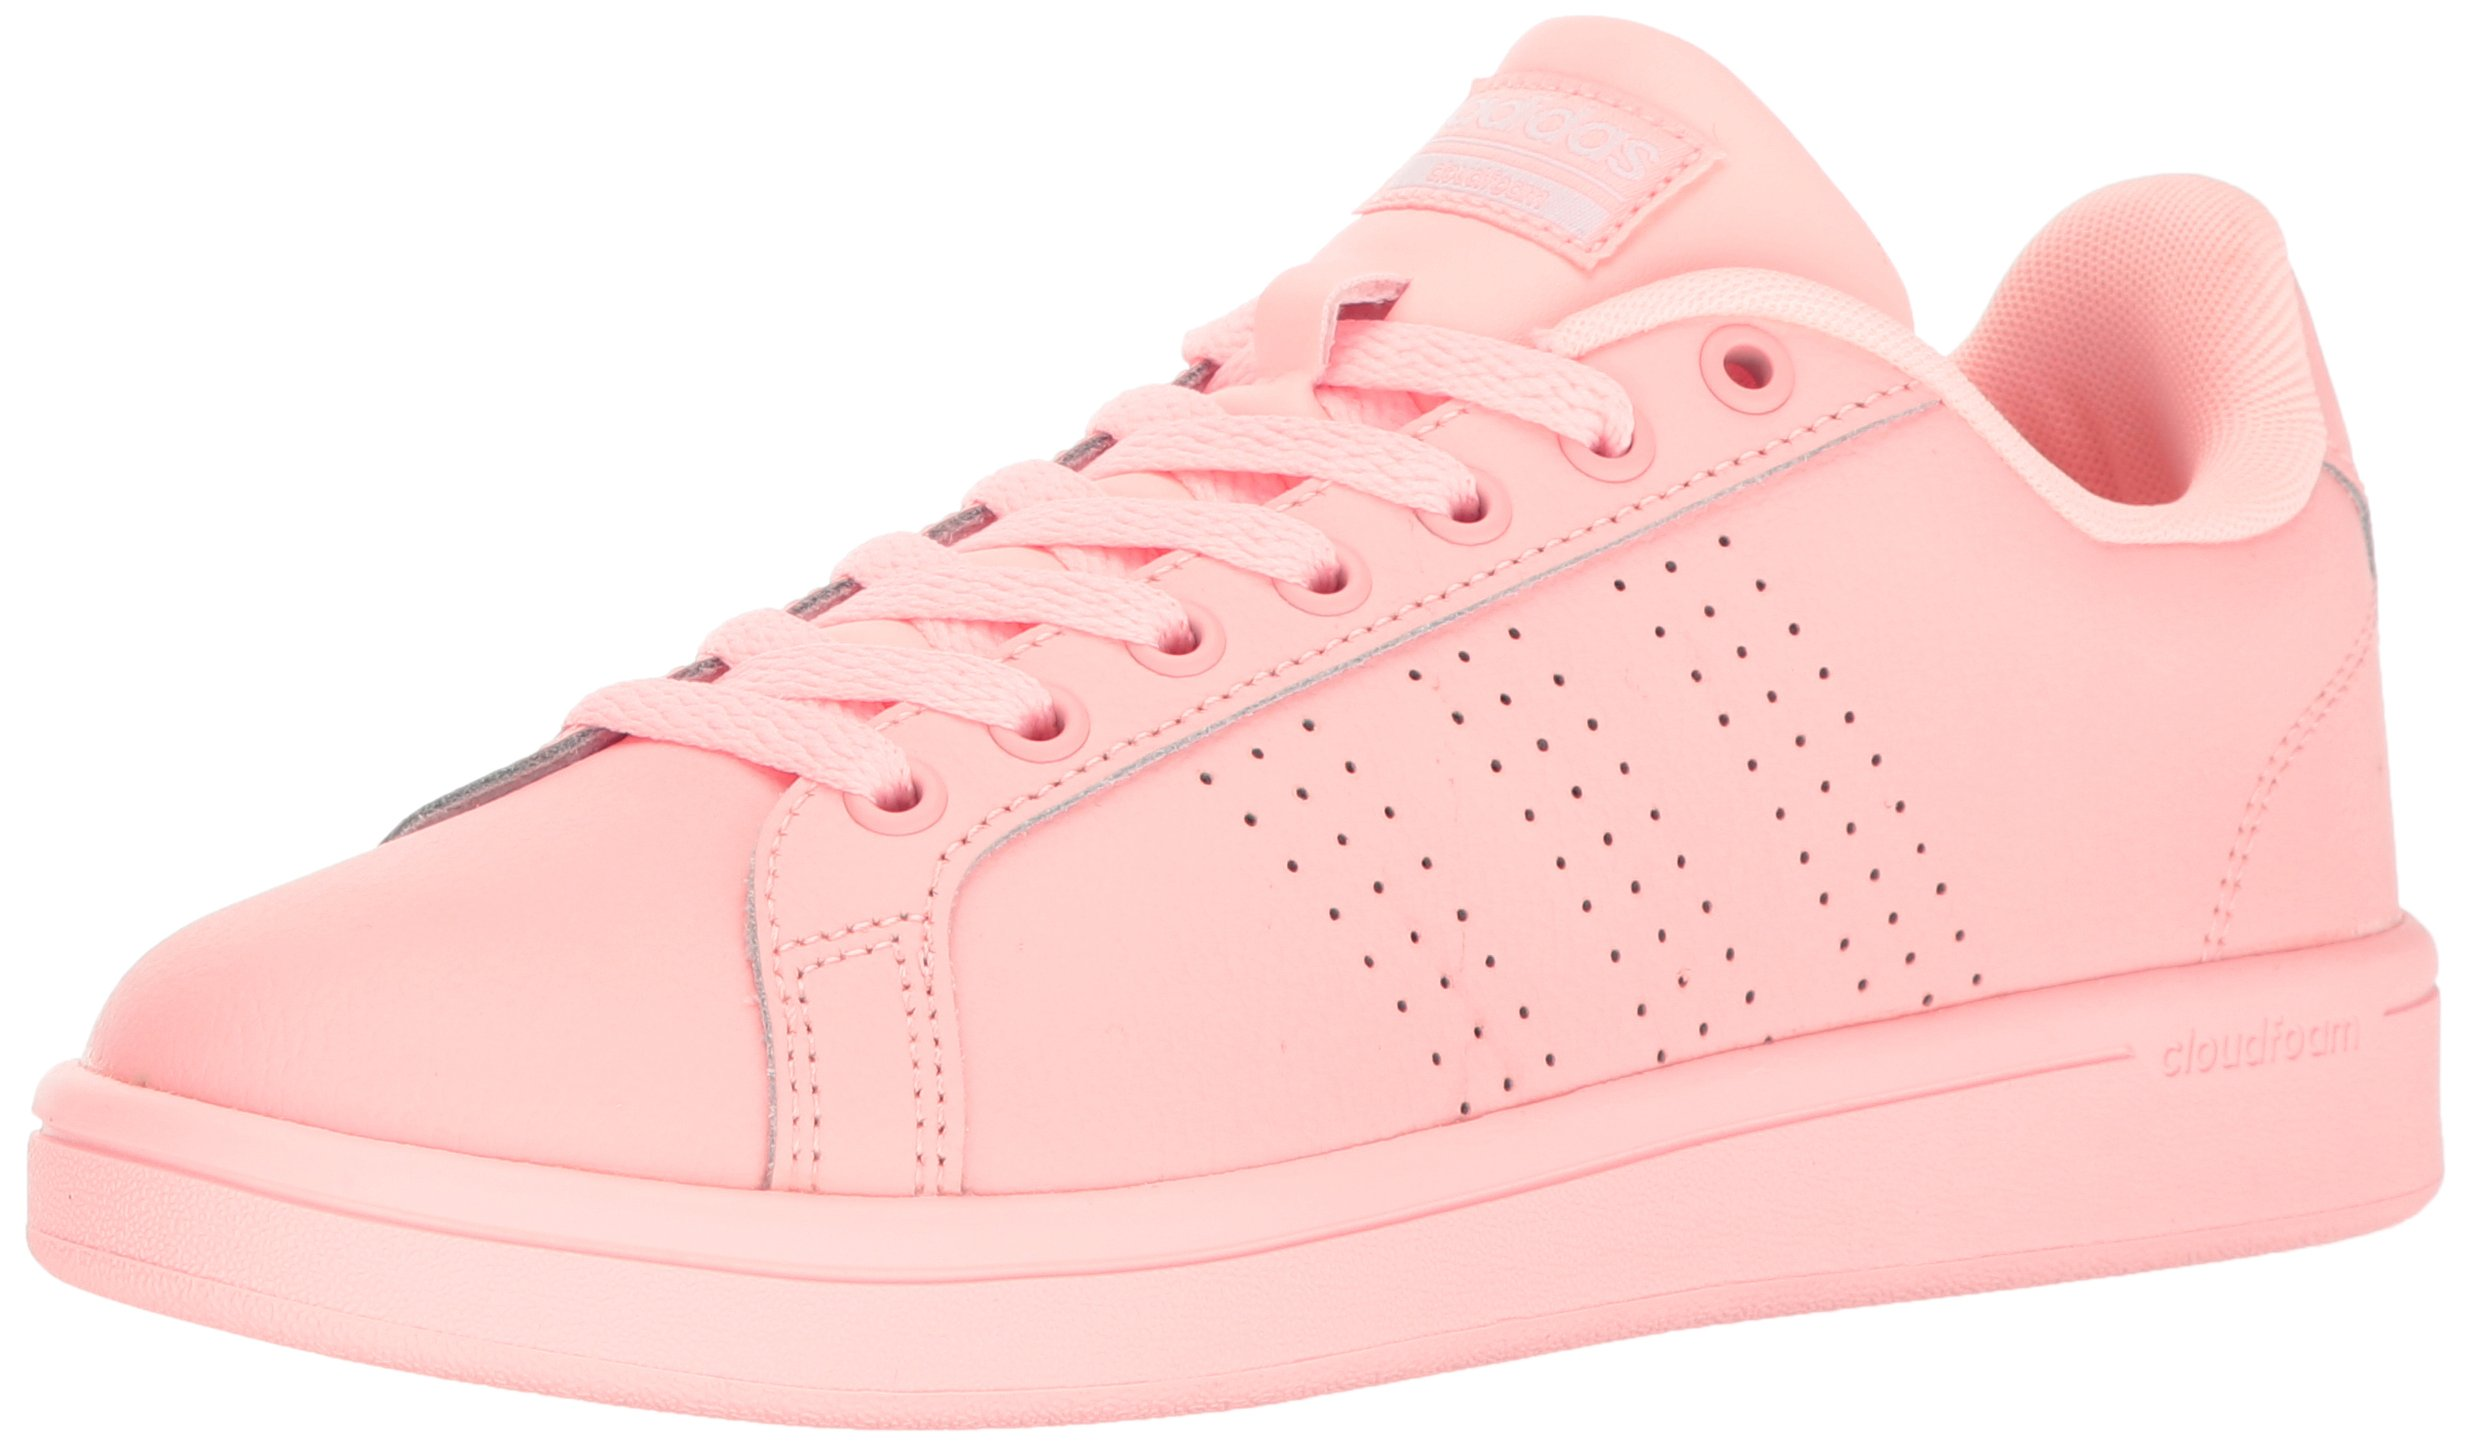 adidas Women's Cloudfoam Advantage Clean Fashion Sneaker Haze Coral/White (6 M US)